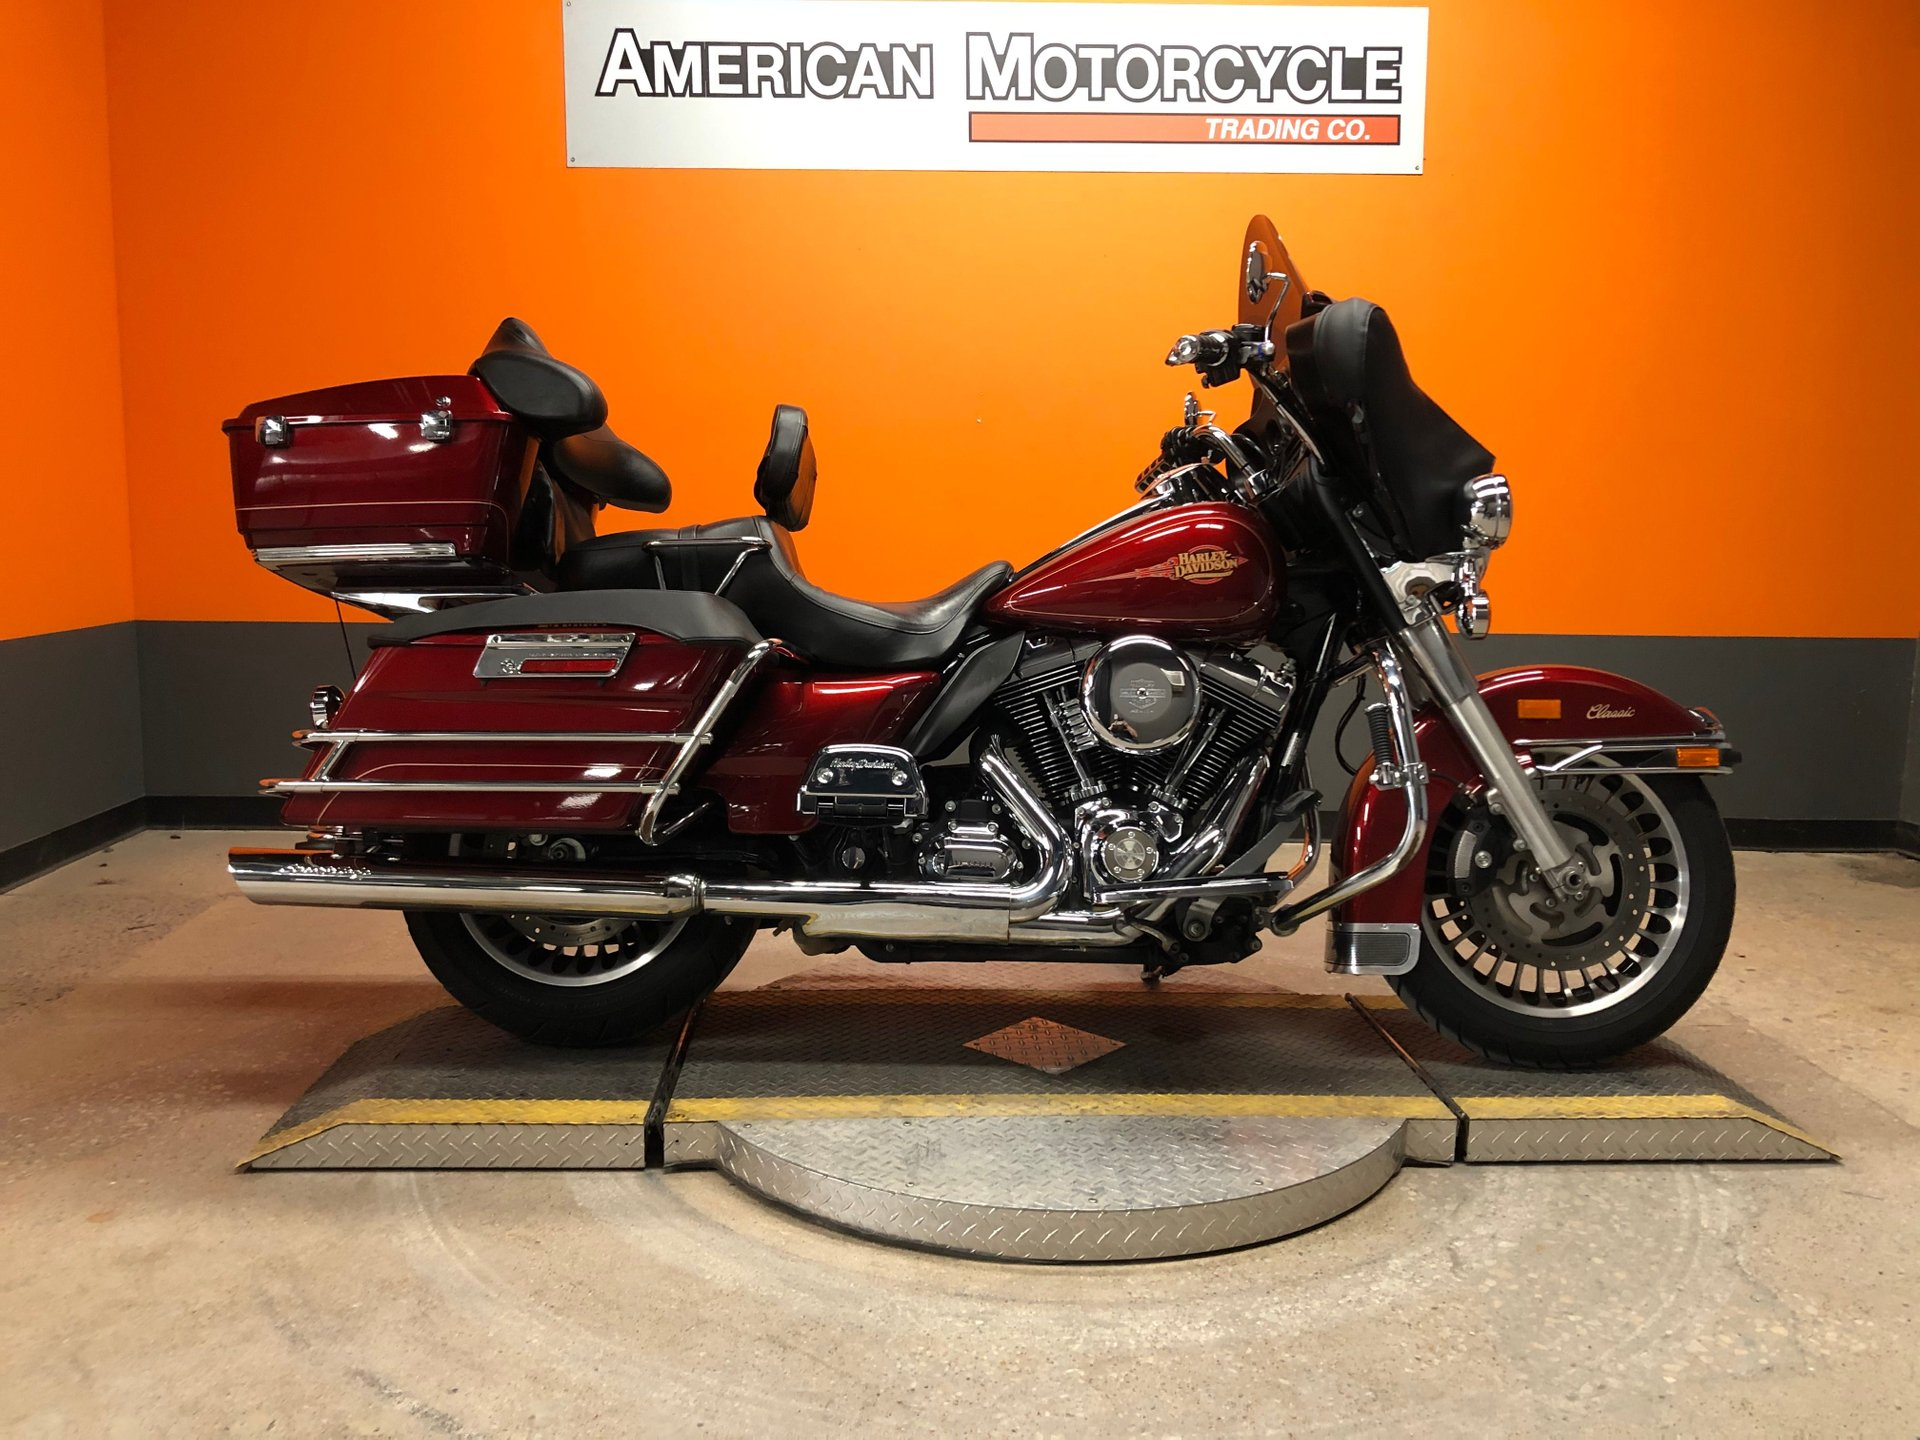 2009 harley davidson electra glide classic flhtc